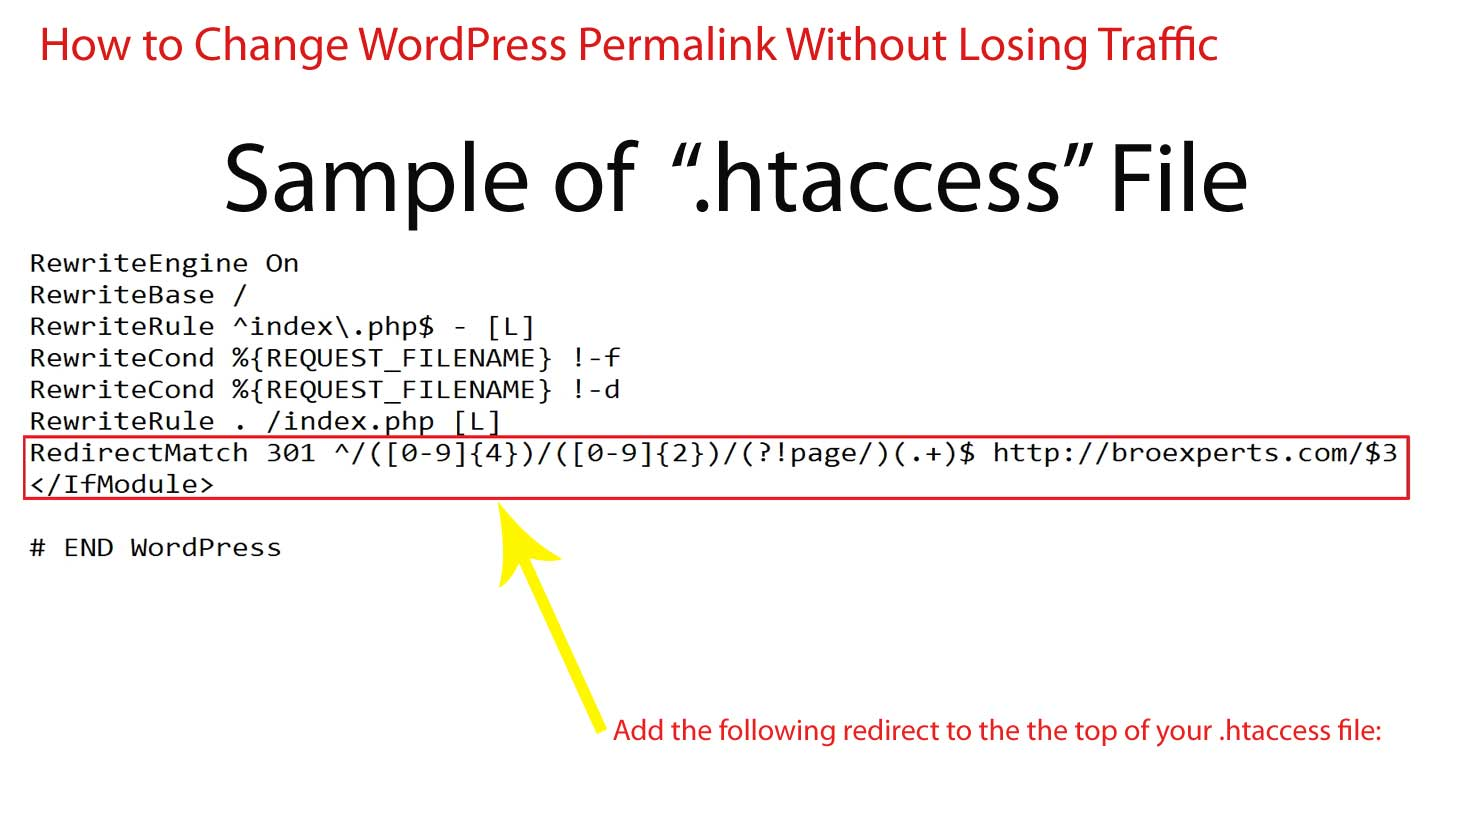 add-301-redirects-in-htaccess-file